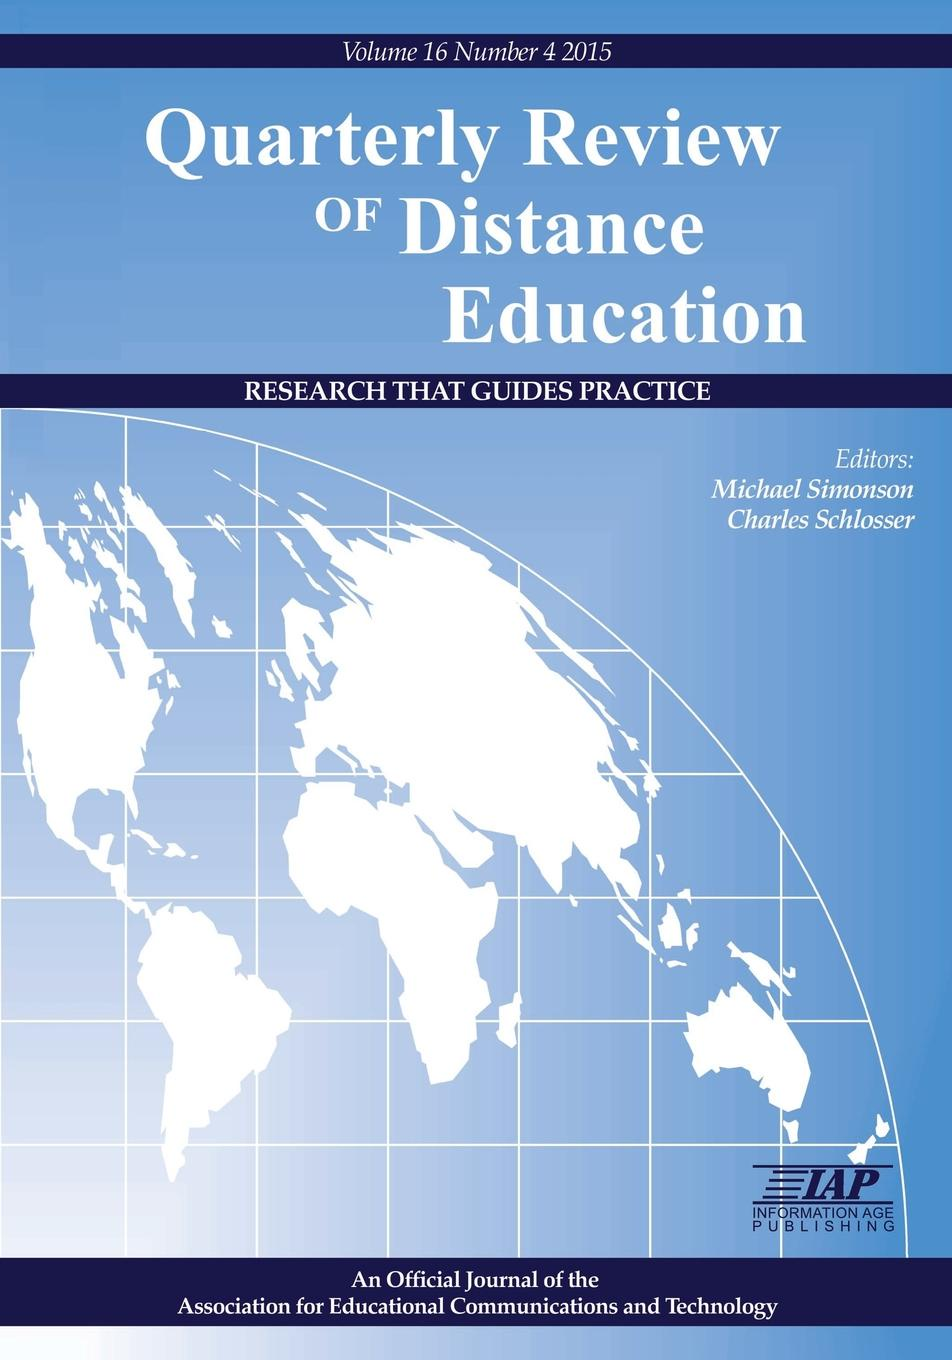 Quarterly Review of Distance Education Research That Guides Practice Volume 16 Number 4 2015 the new york quarterly number 24